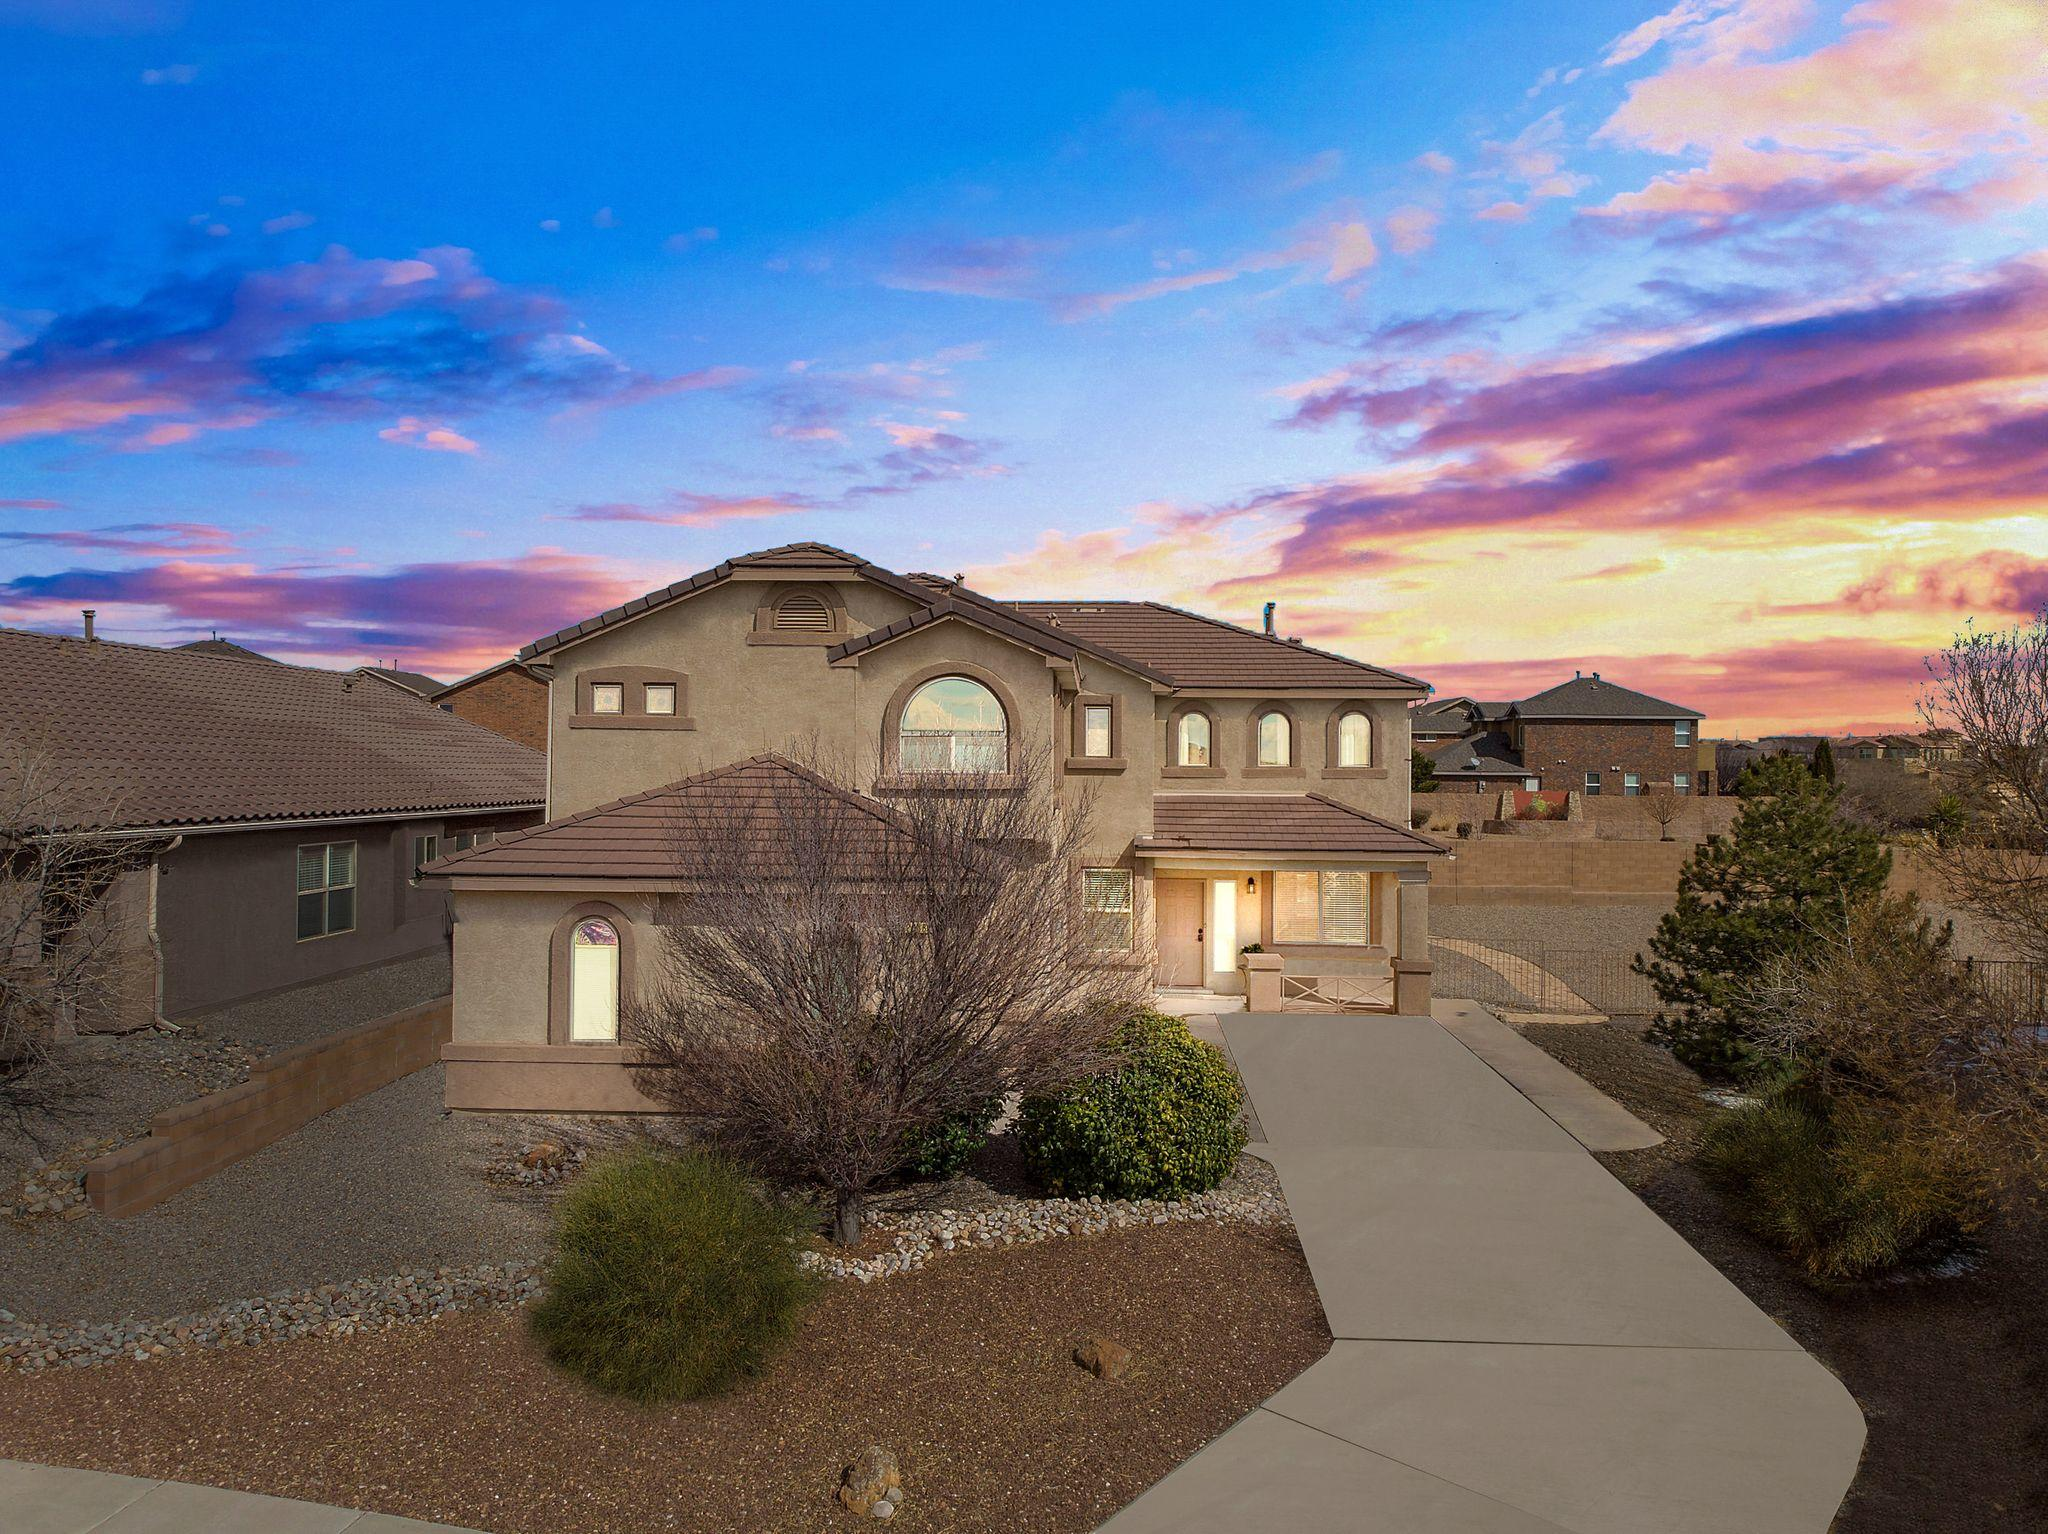 2108 LAS BRISAS Circle SE Property Photo - Rio Rancho, NM real estate listing